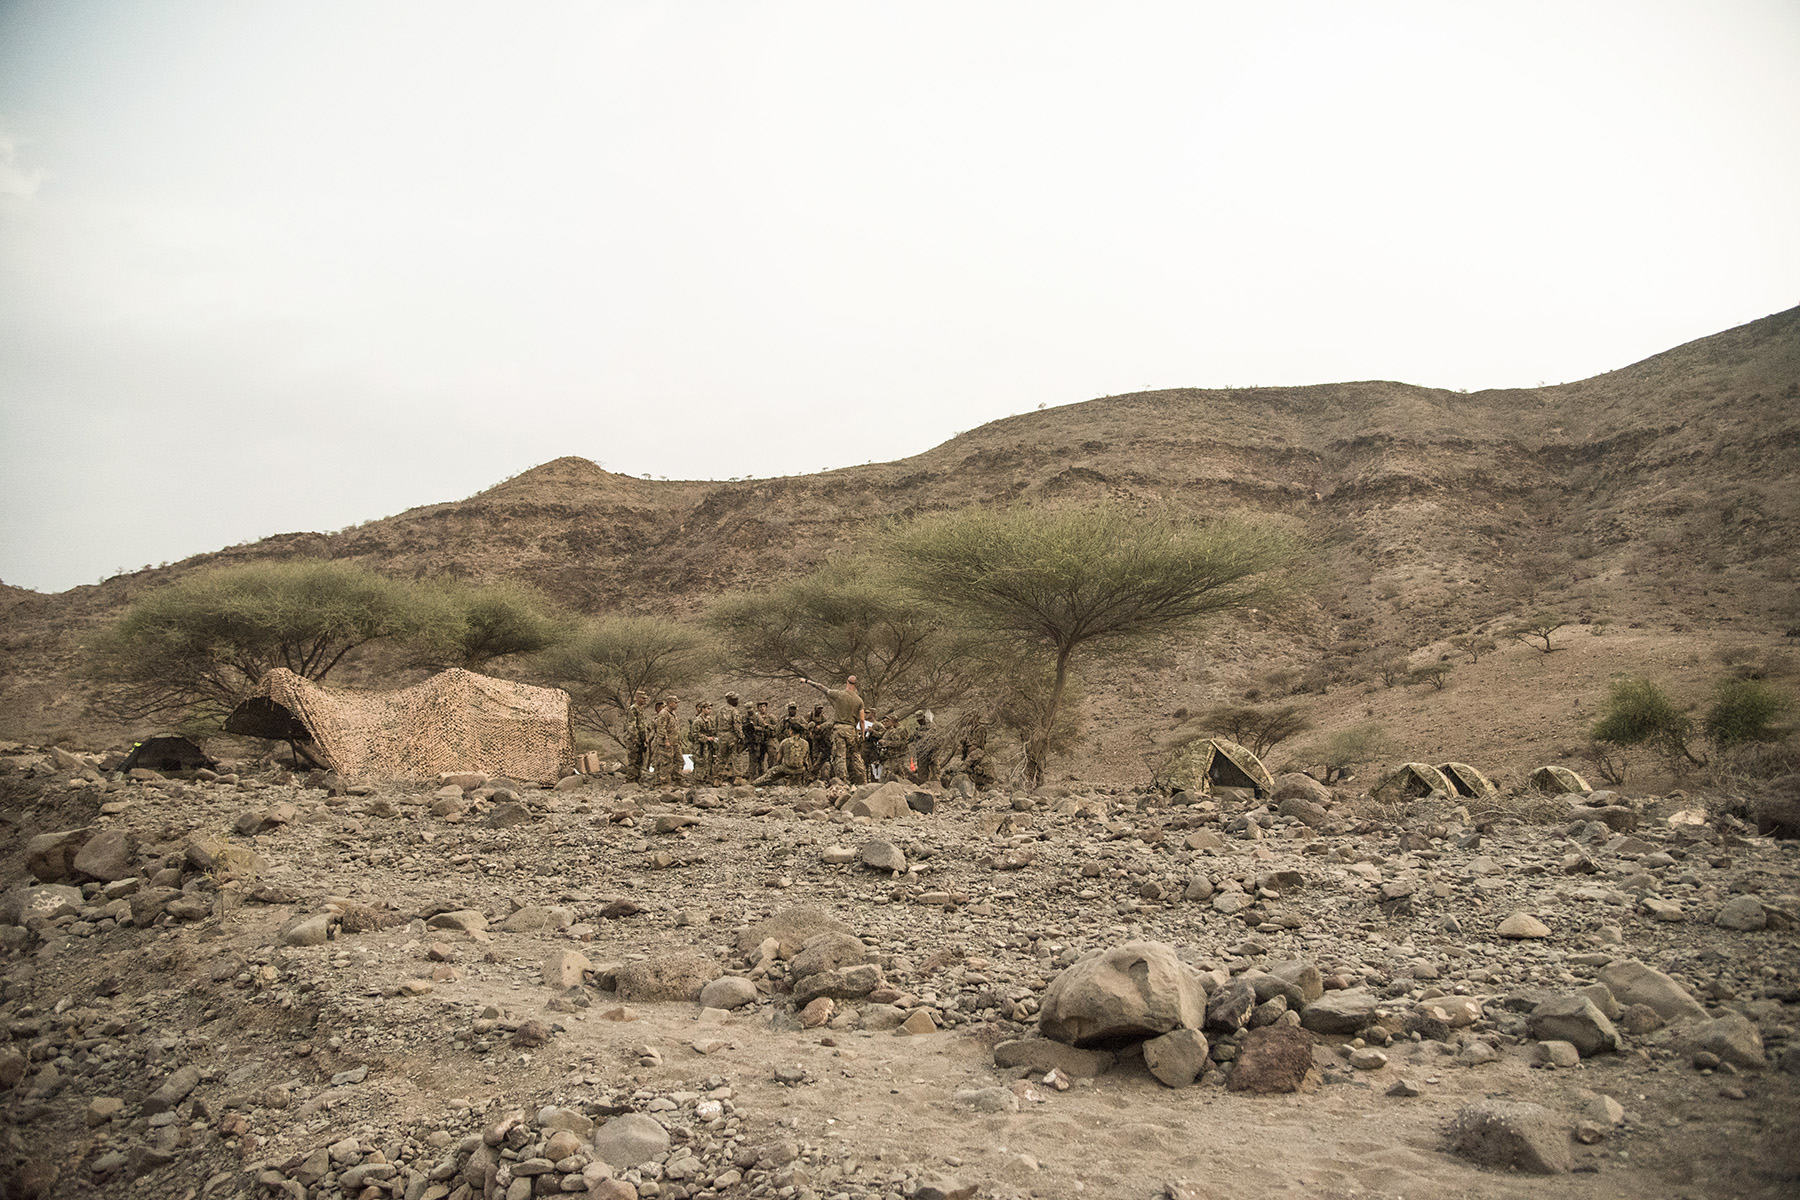 ARTA, DJIBOUTI- U.S. Army soldiers from the Alpha Company, 1st Battalion, 124th Infantry Regiment, participate in land navigation training, Aug. 5, 2016, in Arta, Djibouti. The soldiers completed day and night land navigation training along with mock casualty care, simulating calling for fire support and assembly and disassembly of the M4 carbine rifle. (U.S. Air Force photo by Staff Sgt. Tiffany DeNault)